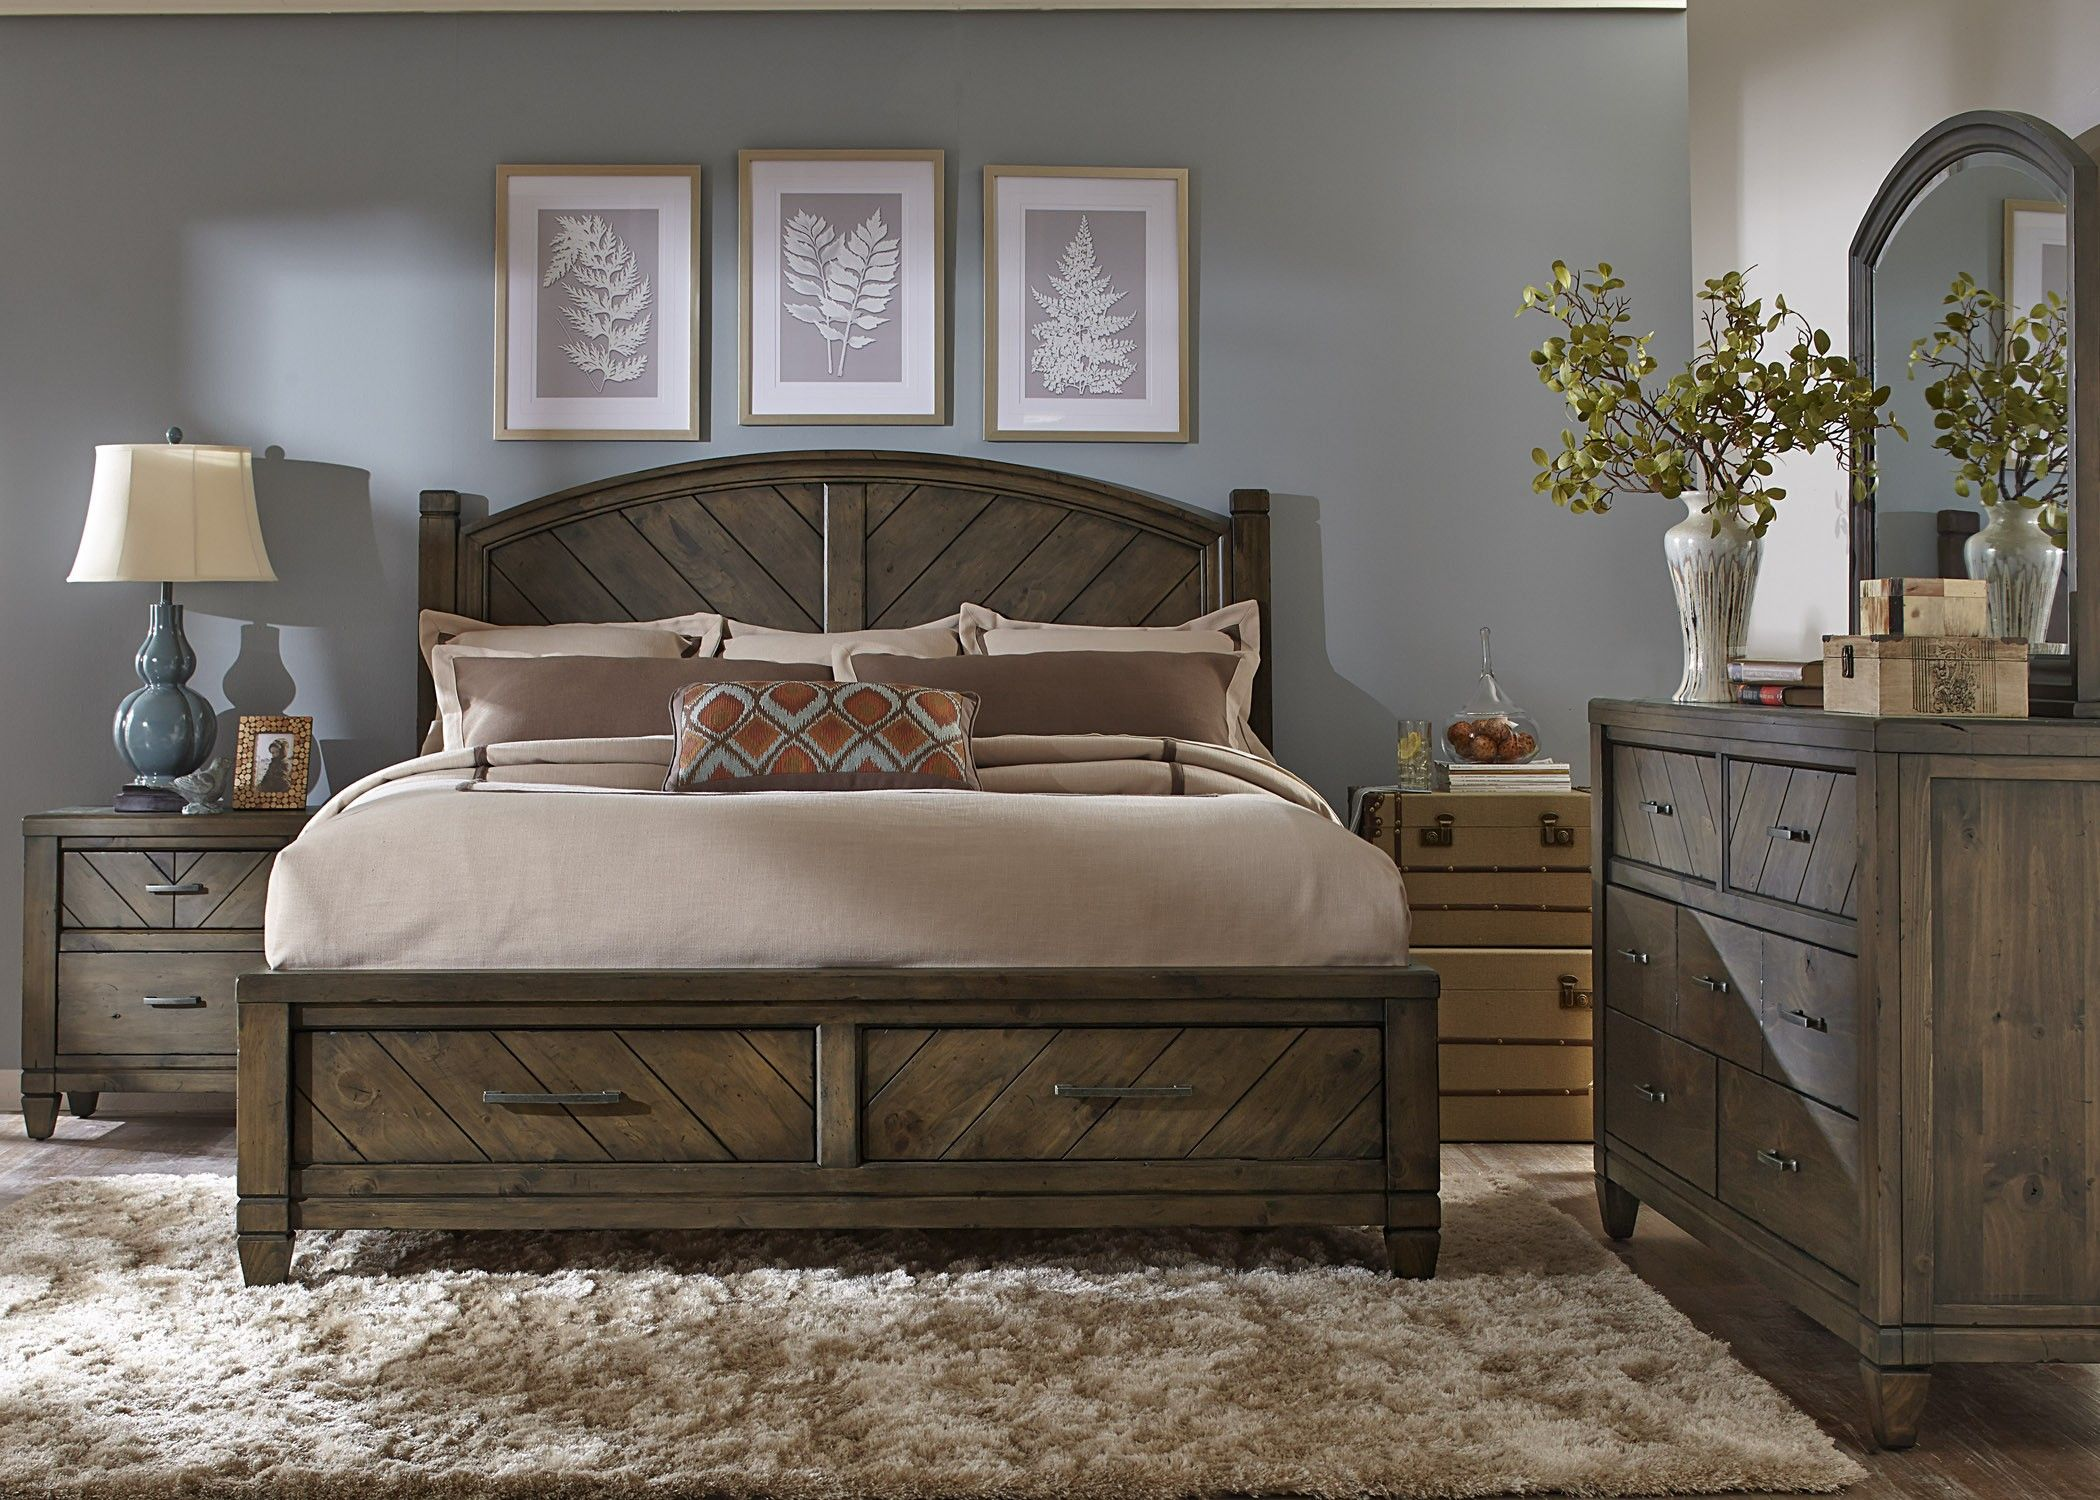 Modern country bedroom set bedroom pinterest country - Contemporary king bedroom furniture ...